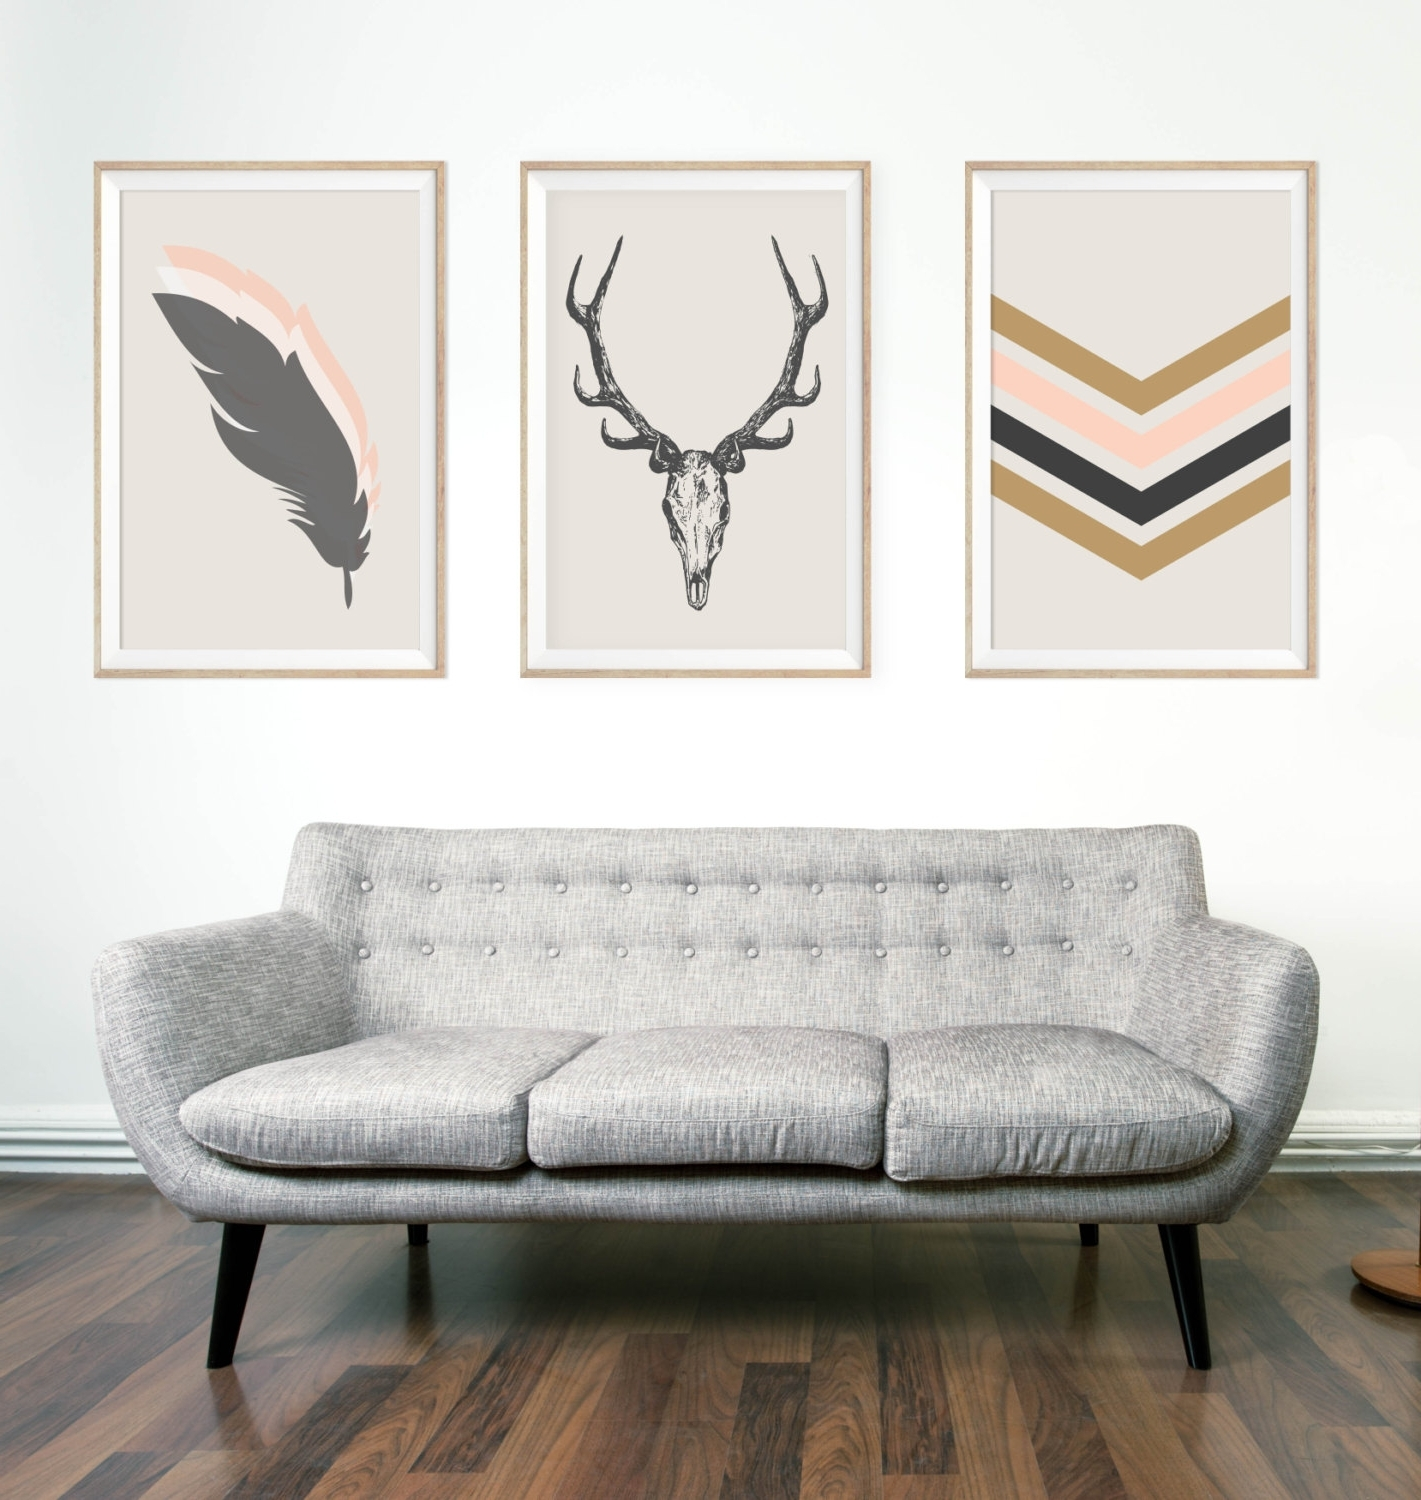 Boho Chic Wall Art Inside Newest Southwestern Chic Minimalist Wall Art Print Deeralphonnsine (View 2 of 15)